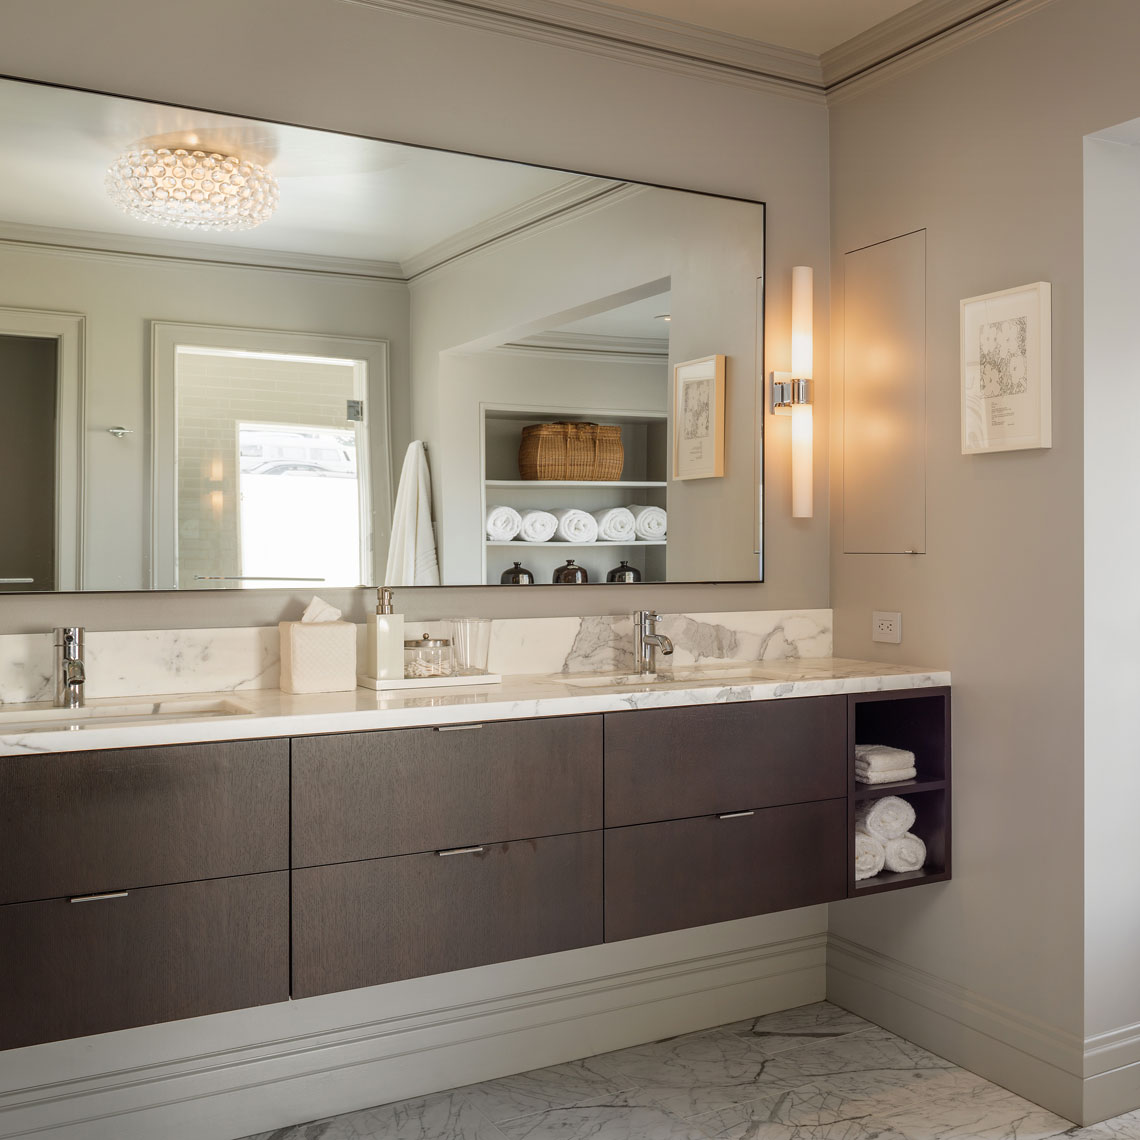 Springtime Renovations for Your Bathroom and Kitchen Countertops in Chicago